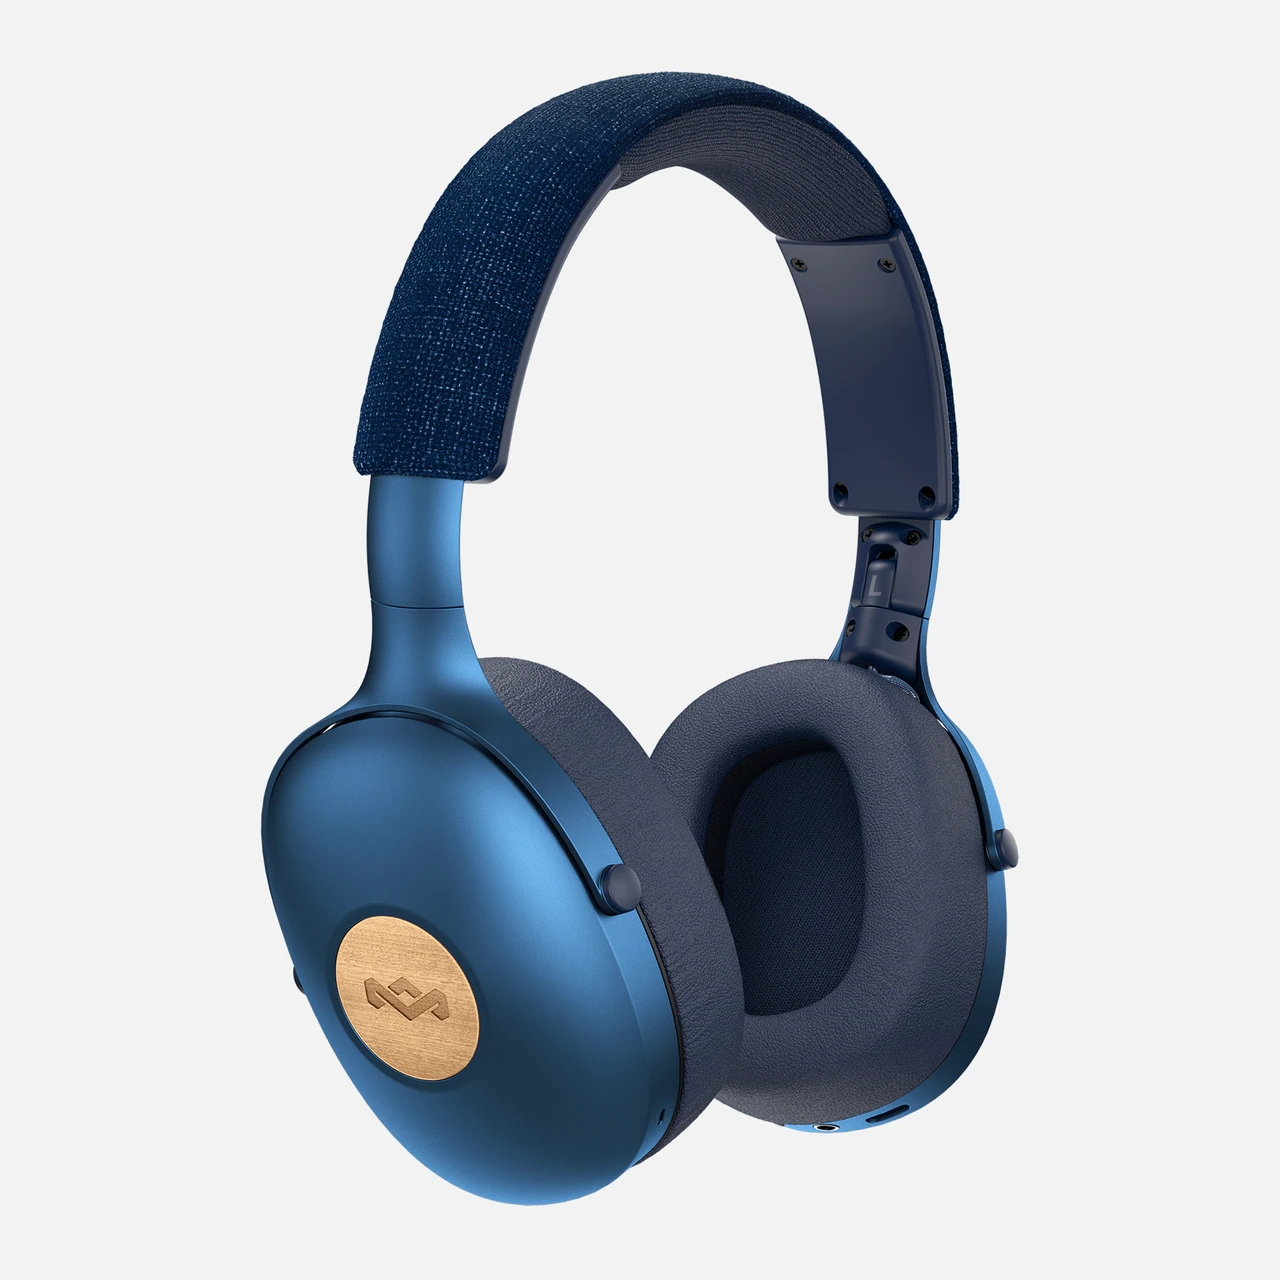 Наушники Marley Positive Vibration XL EM-JH141-BL Denim наушники marley positive vibration xl em jh141 bl denim